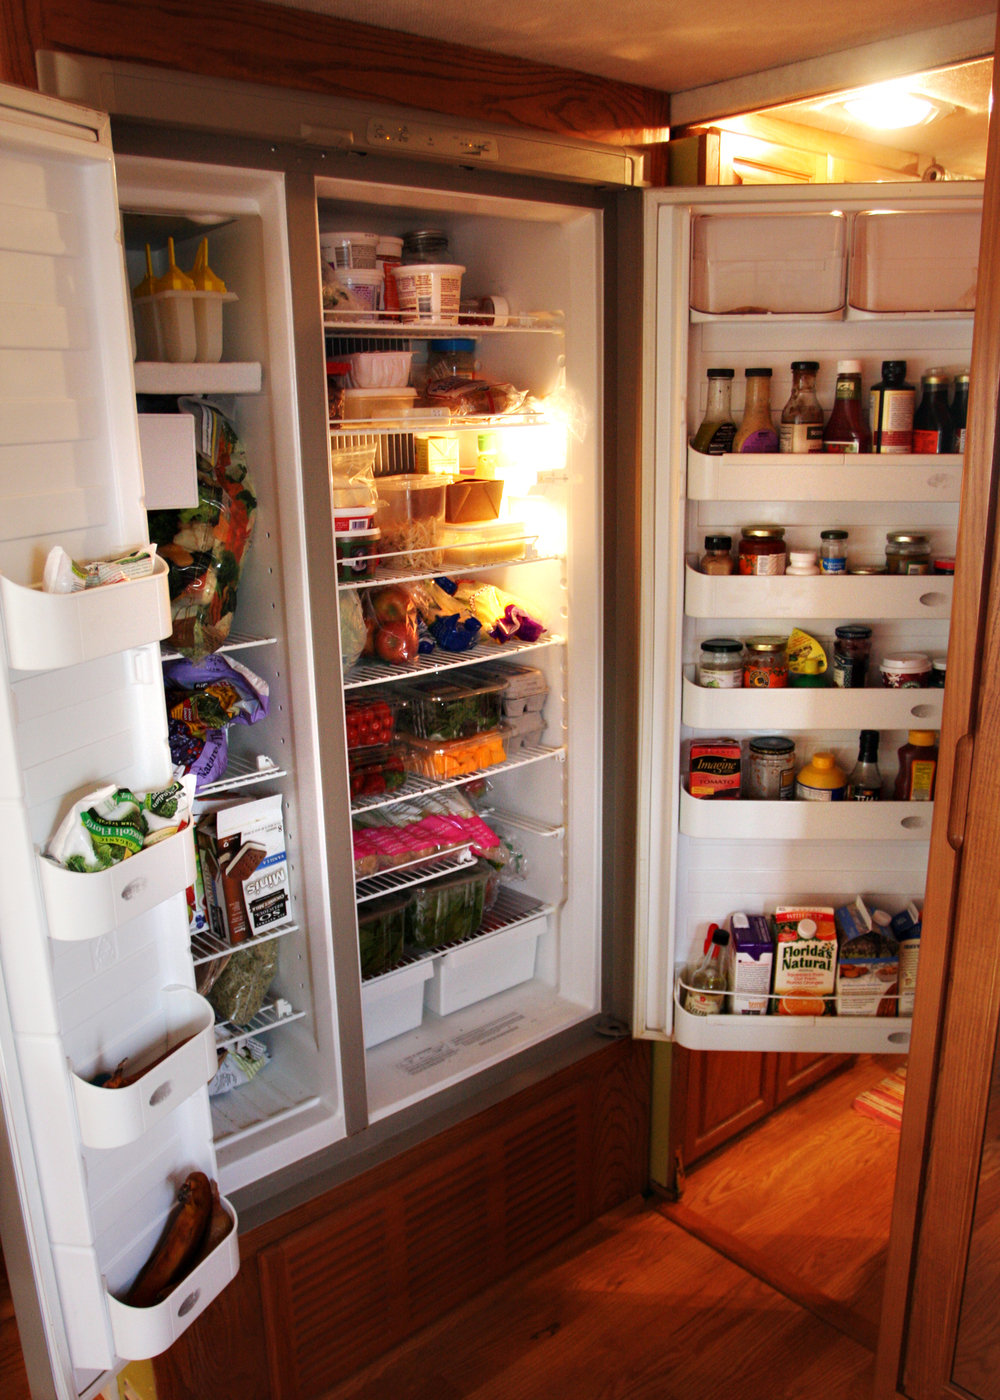 22_My HUGE Fridge.jpg